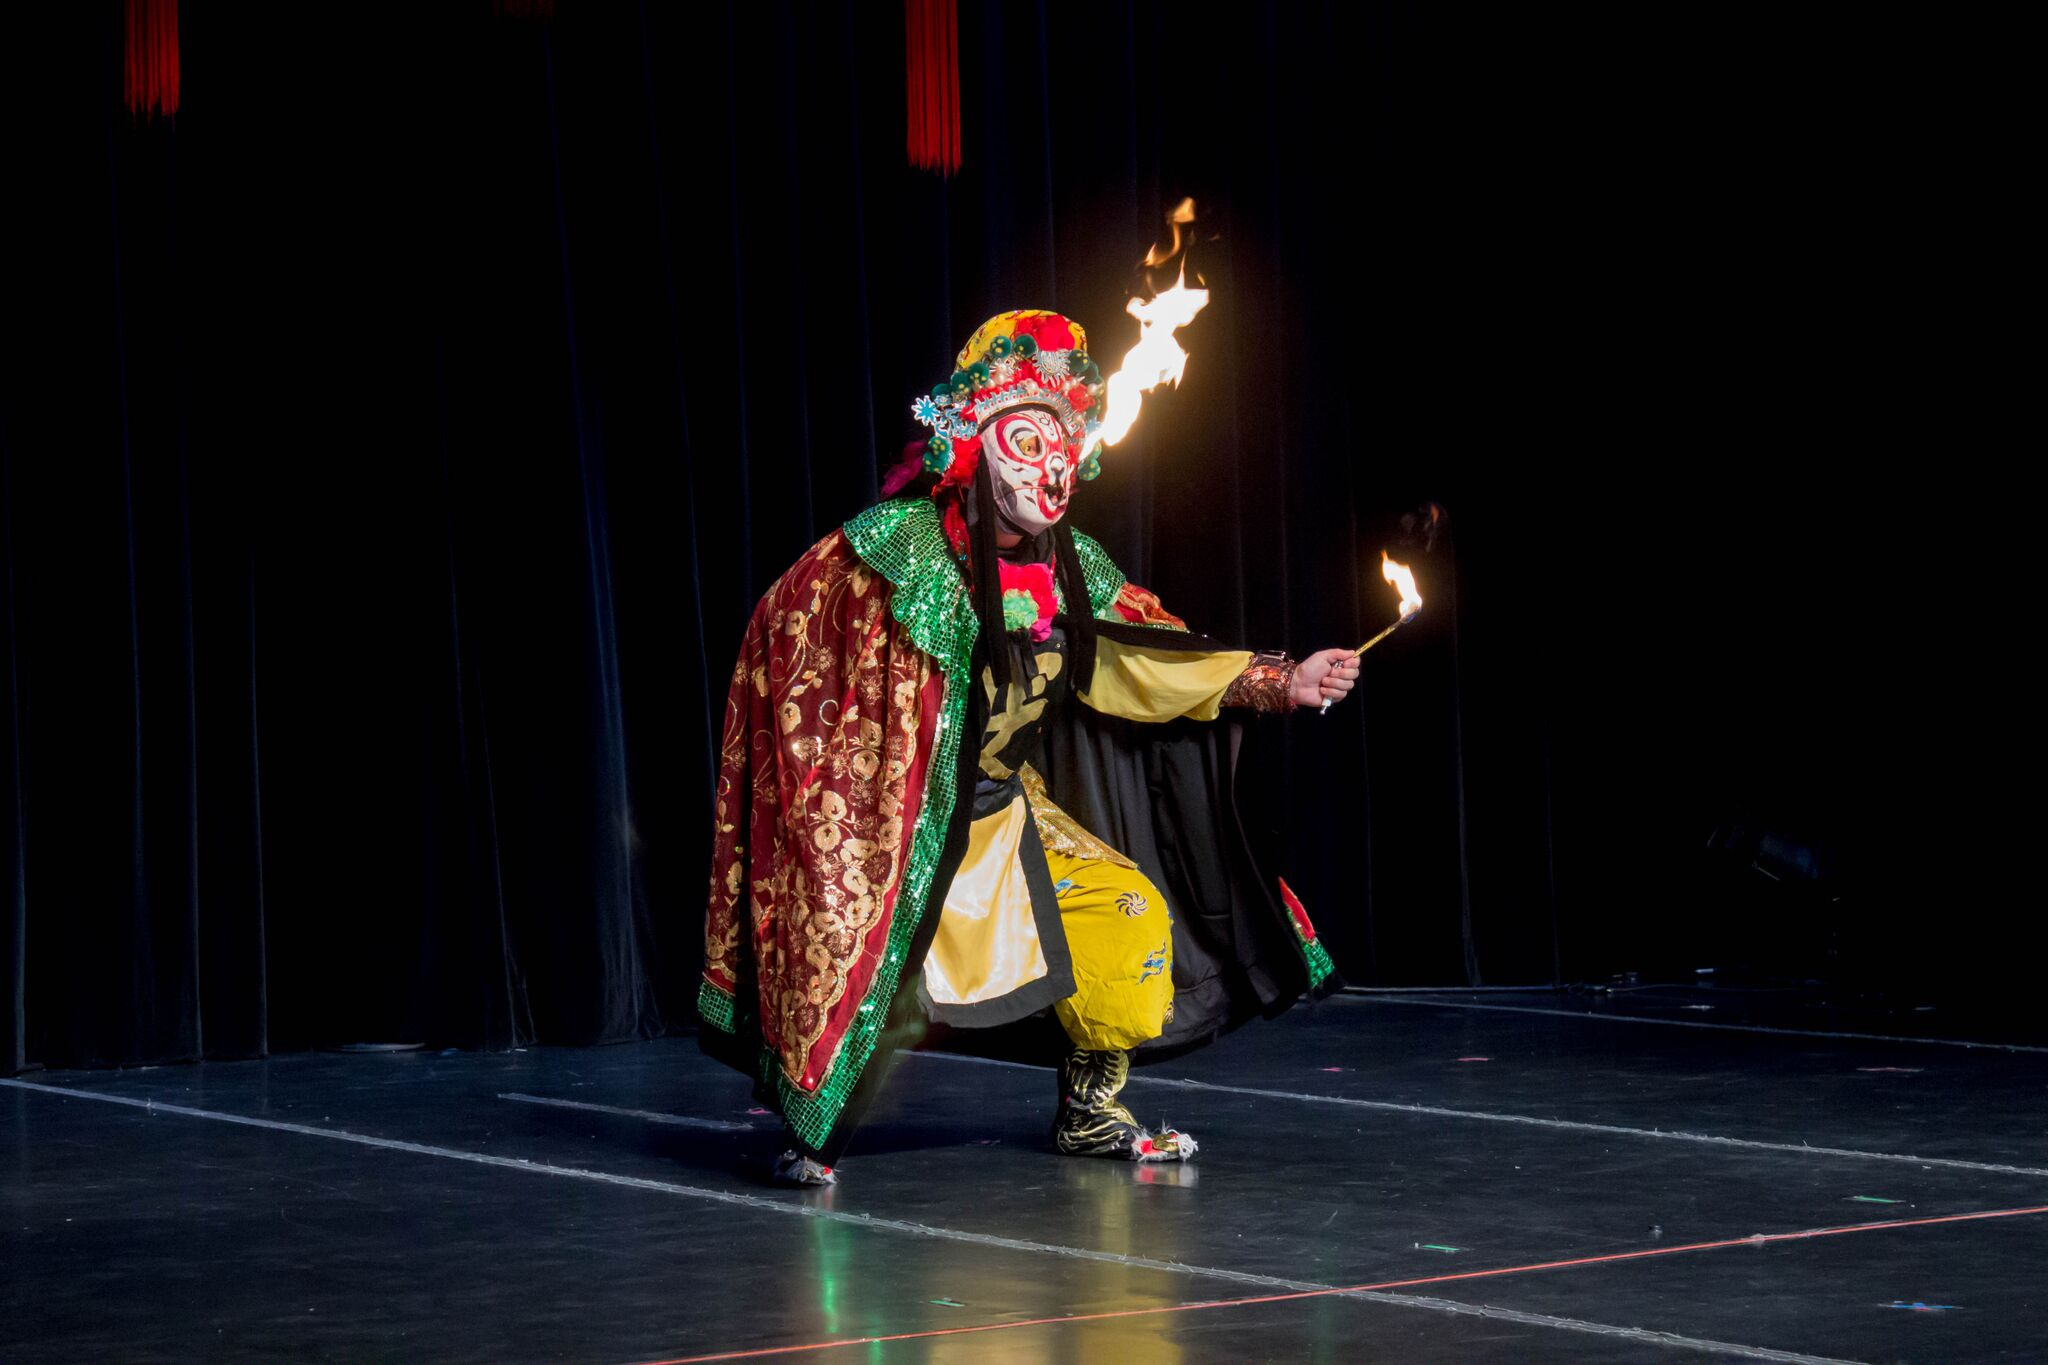 A magician performed a face changing performance. The performers wear masks of different colors usually depicting well known characters from the Sichuan Opera. One of the faces the magician depicted included a fire-breathing skit. The technique used to change masks has been a guarded secret which has been passed down traditionally from generation to generation within theater families. MANJU SHIVACHARAN/ THE STATESMAN